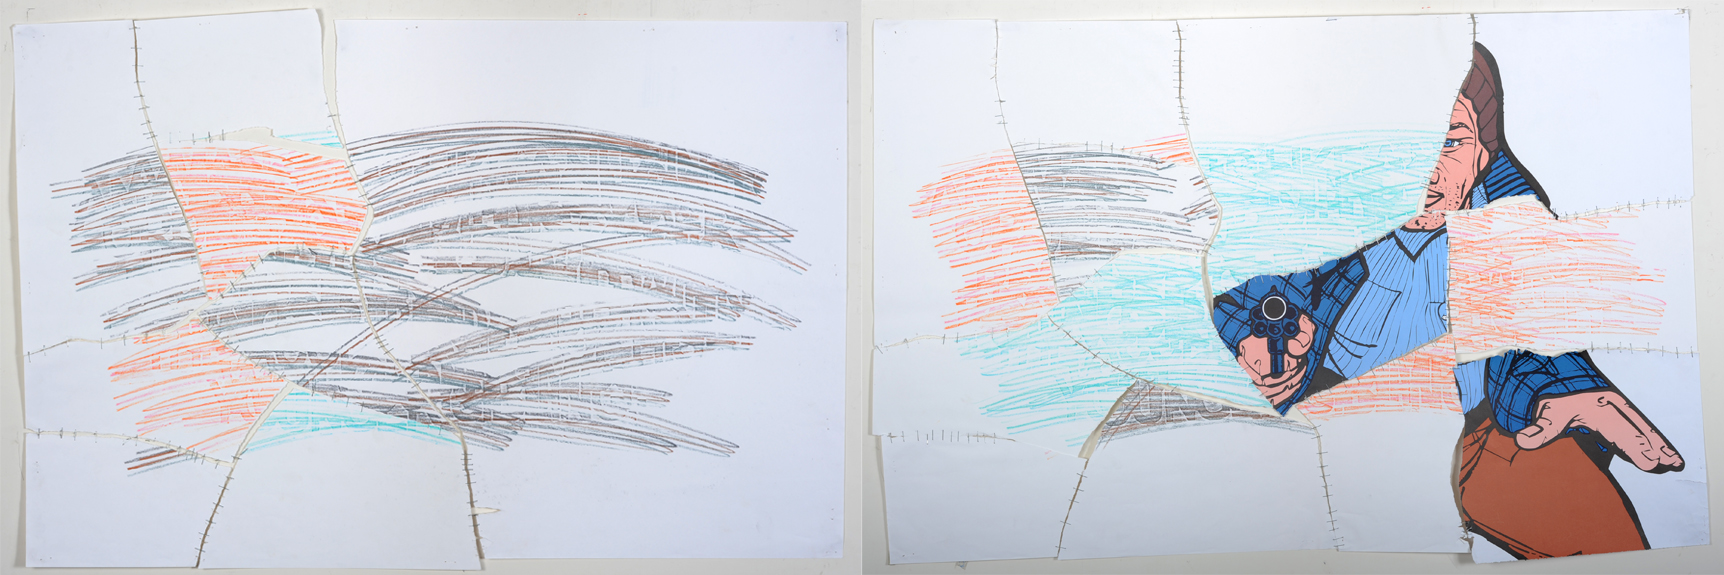 Things Change , 2010 Paper, poster, color pencil, staples Approximately 26 x 38 inches each